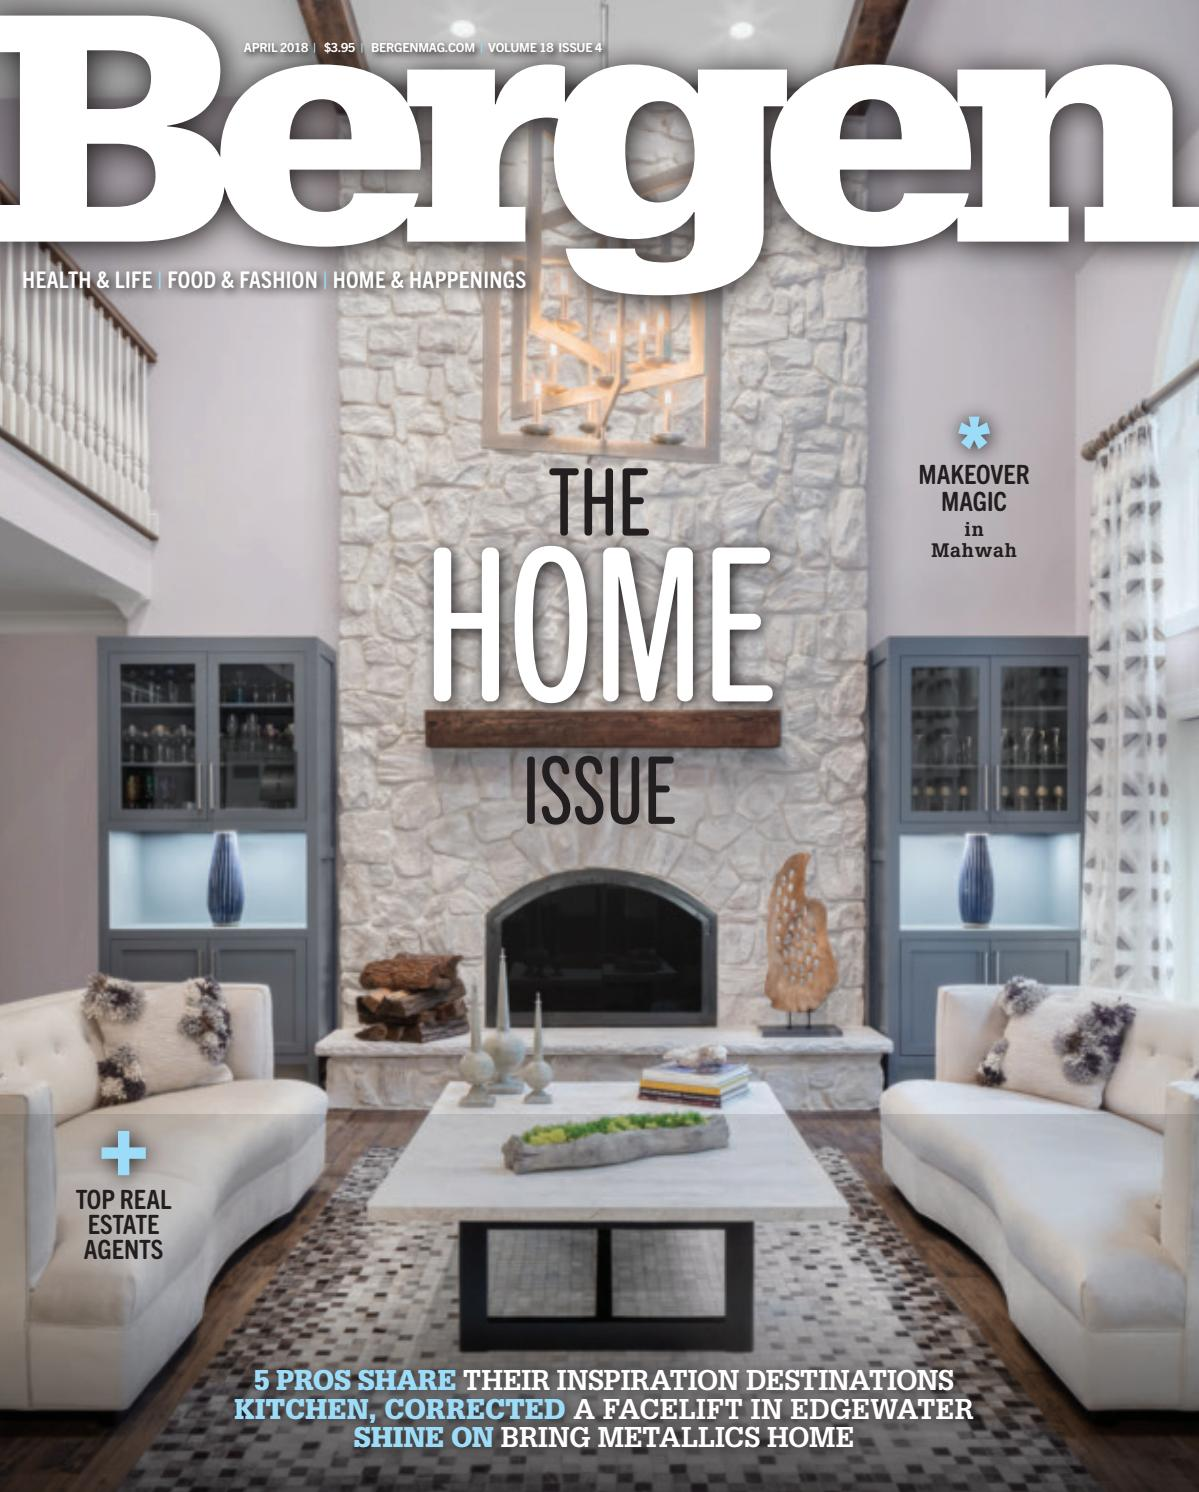 major home remodel remodeling contractors in dumont nj 07628 bergen county bergen Bergen: April 2018 by Wainscot Media - issuu